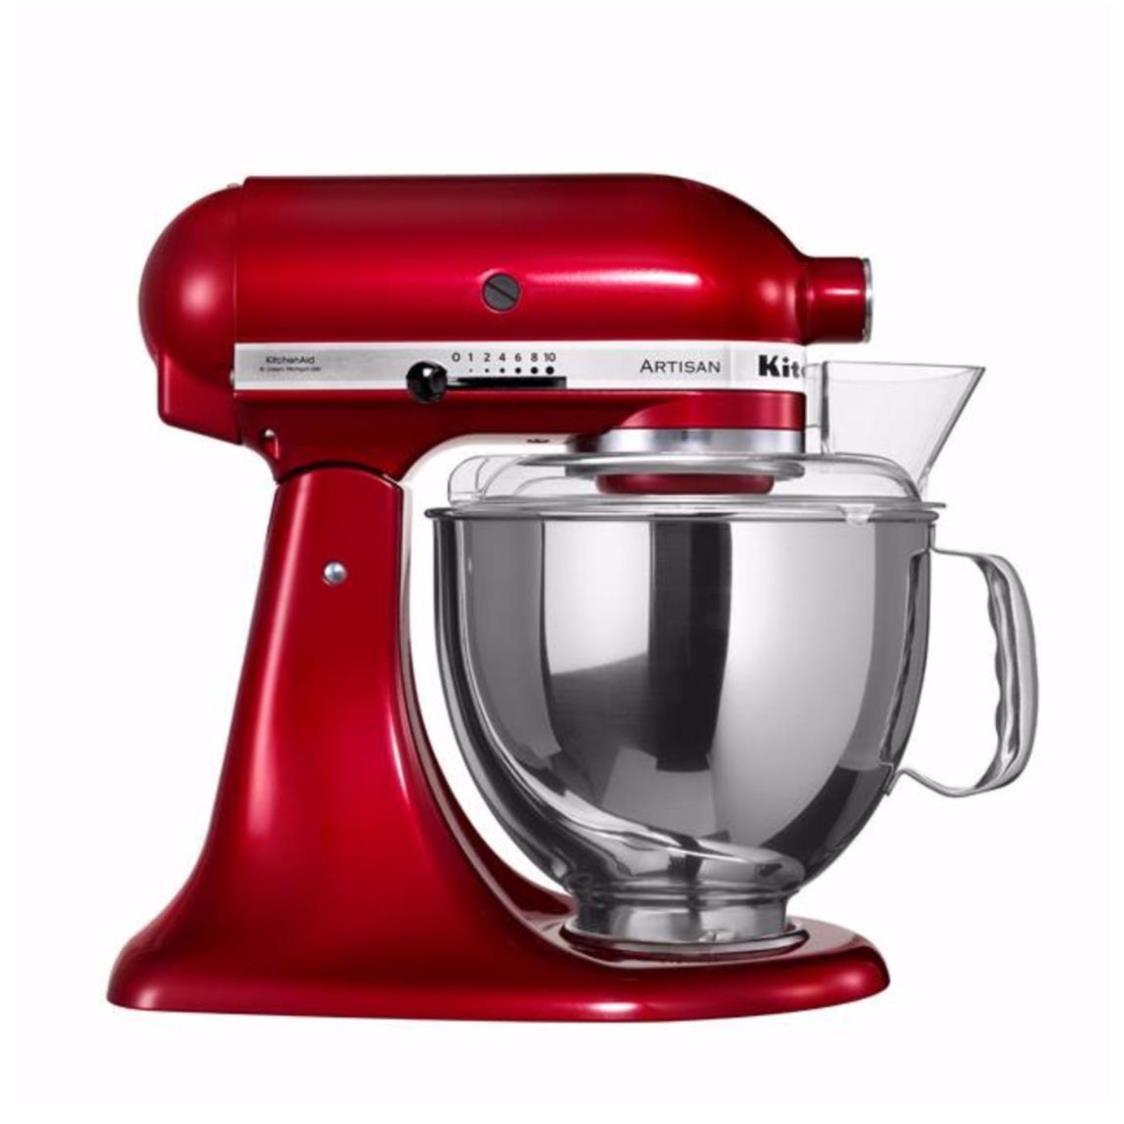 KitchenAid Artisan Series Tilt-Head Stand Mixer 5KSM150PSBCA